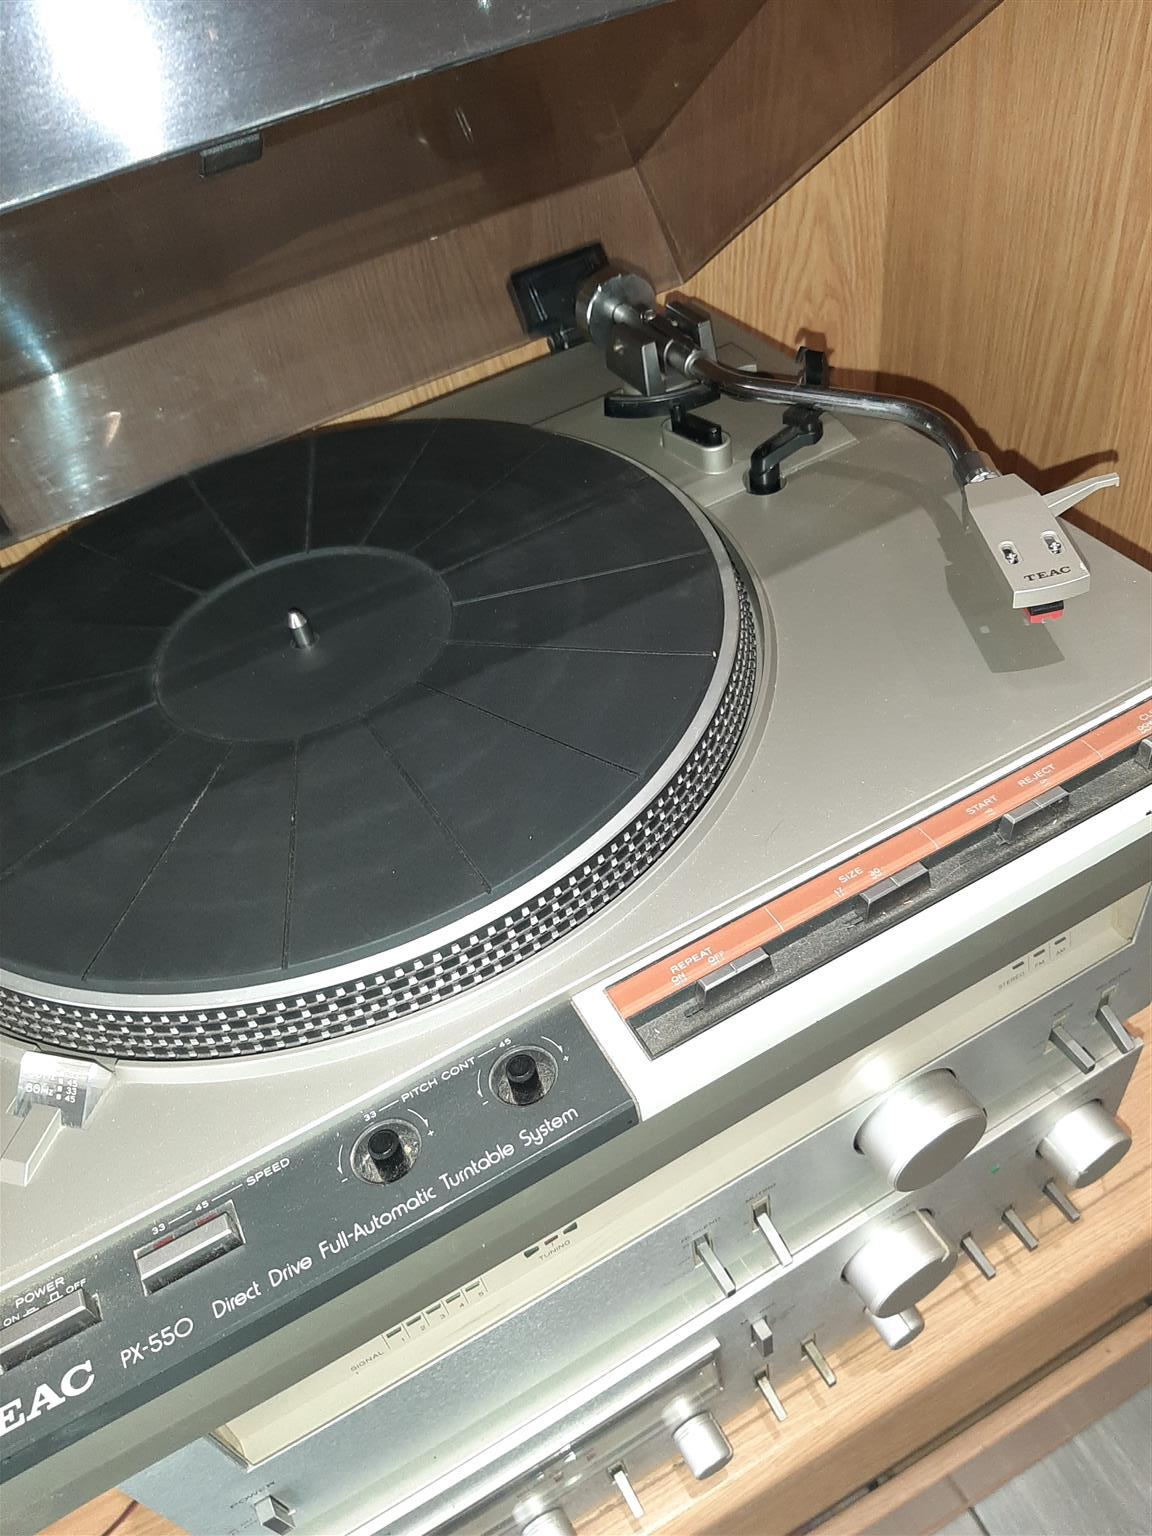 Teac integrated Hi Fi system, PX 550 turntable, TX 550 tuner, BX 550 amp.